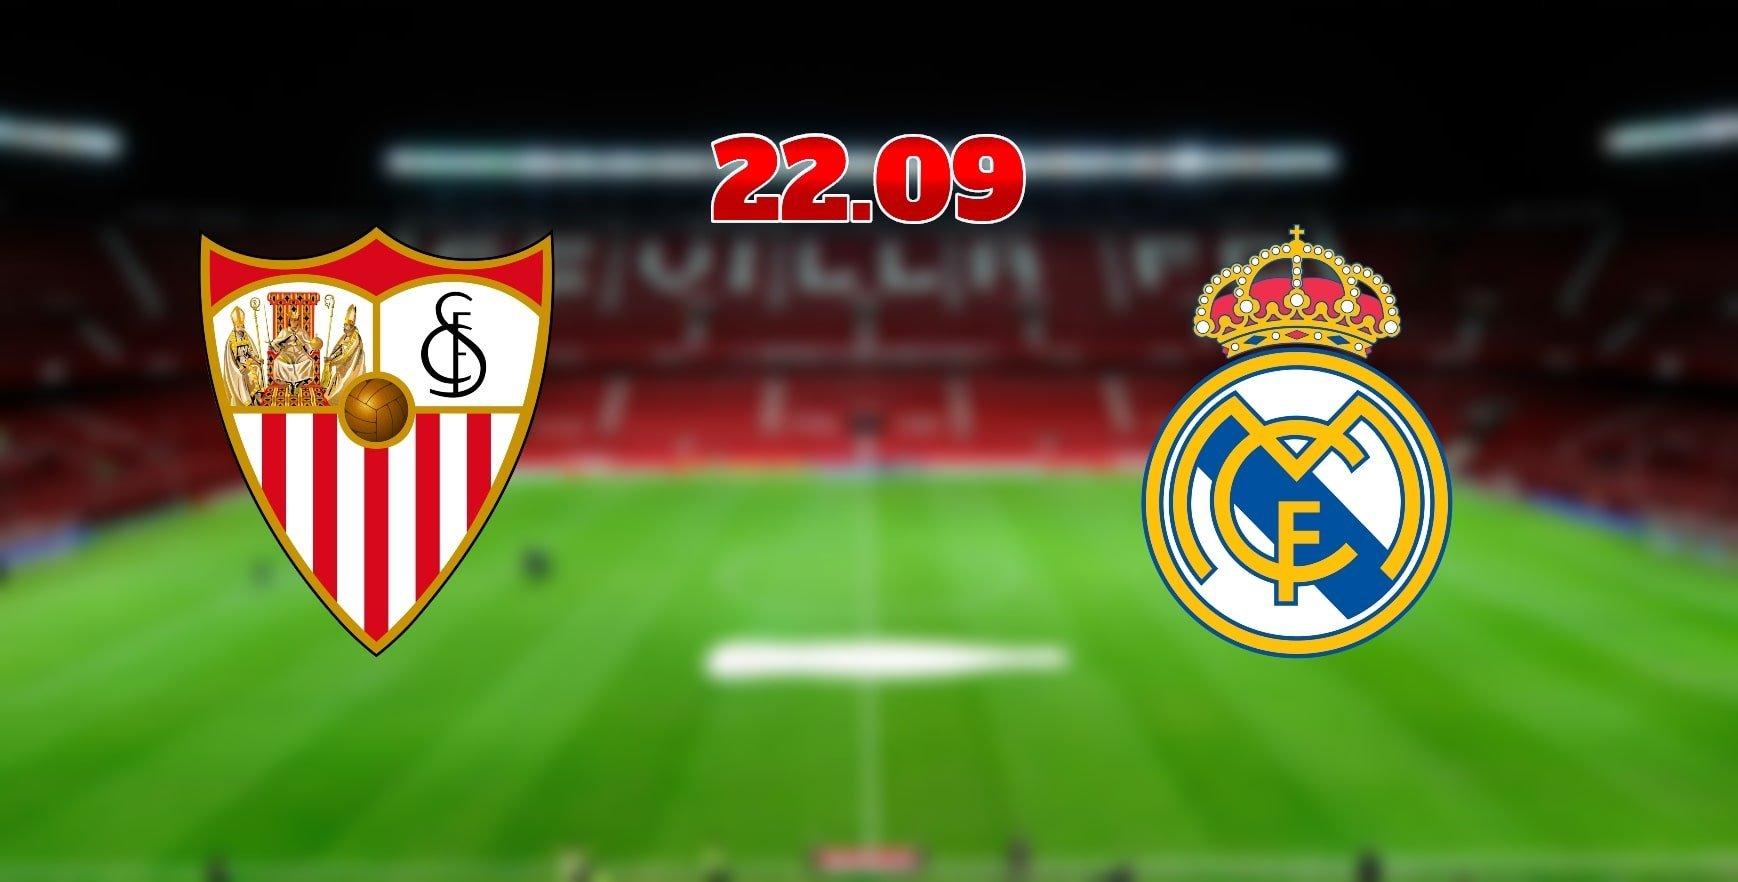 Sevilla vs Real Madrid Prediction: 22.09.2019 La Liga